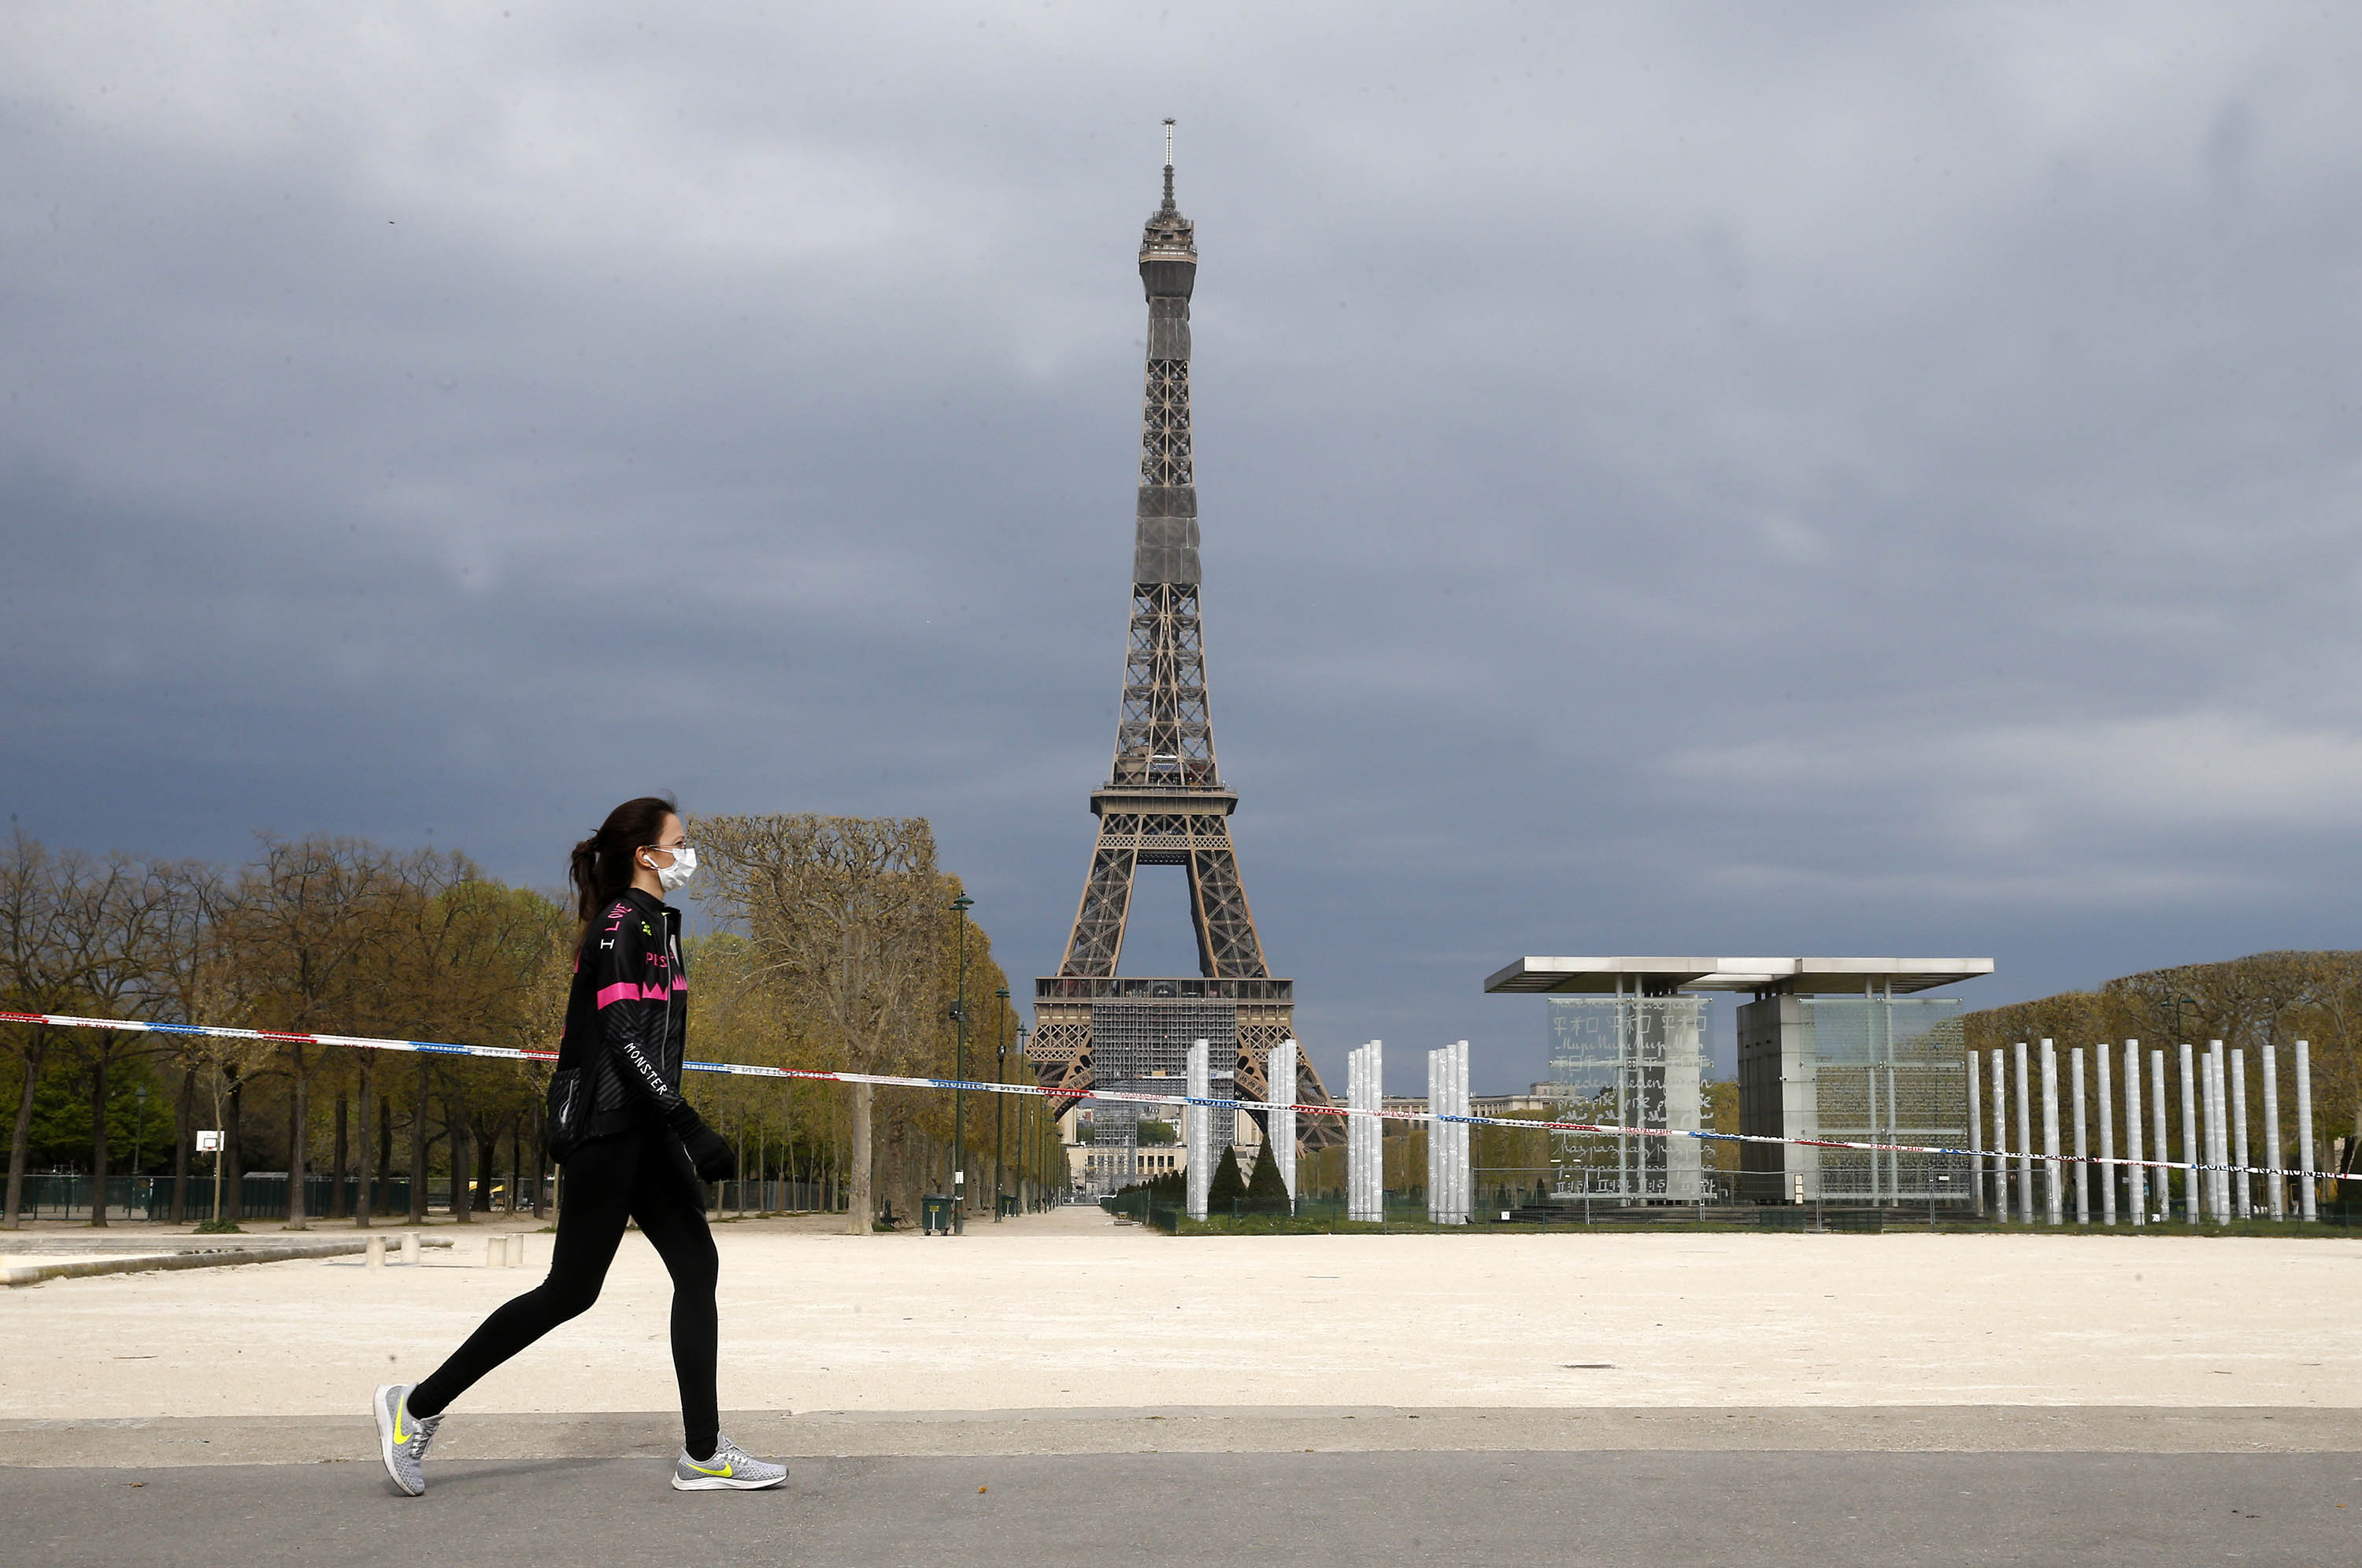 A woman walks passed the Eiffel Tower in Paris, France, on April 6.